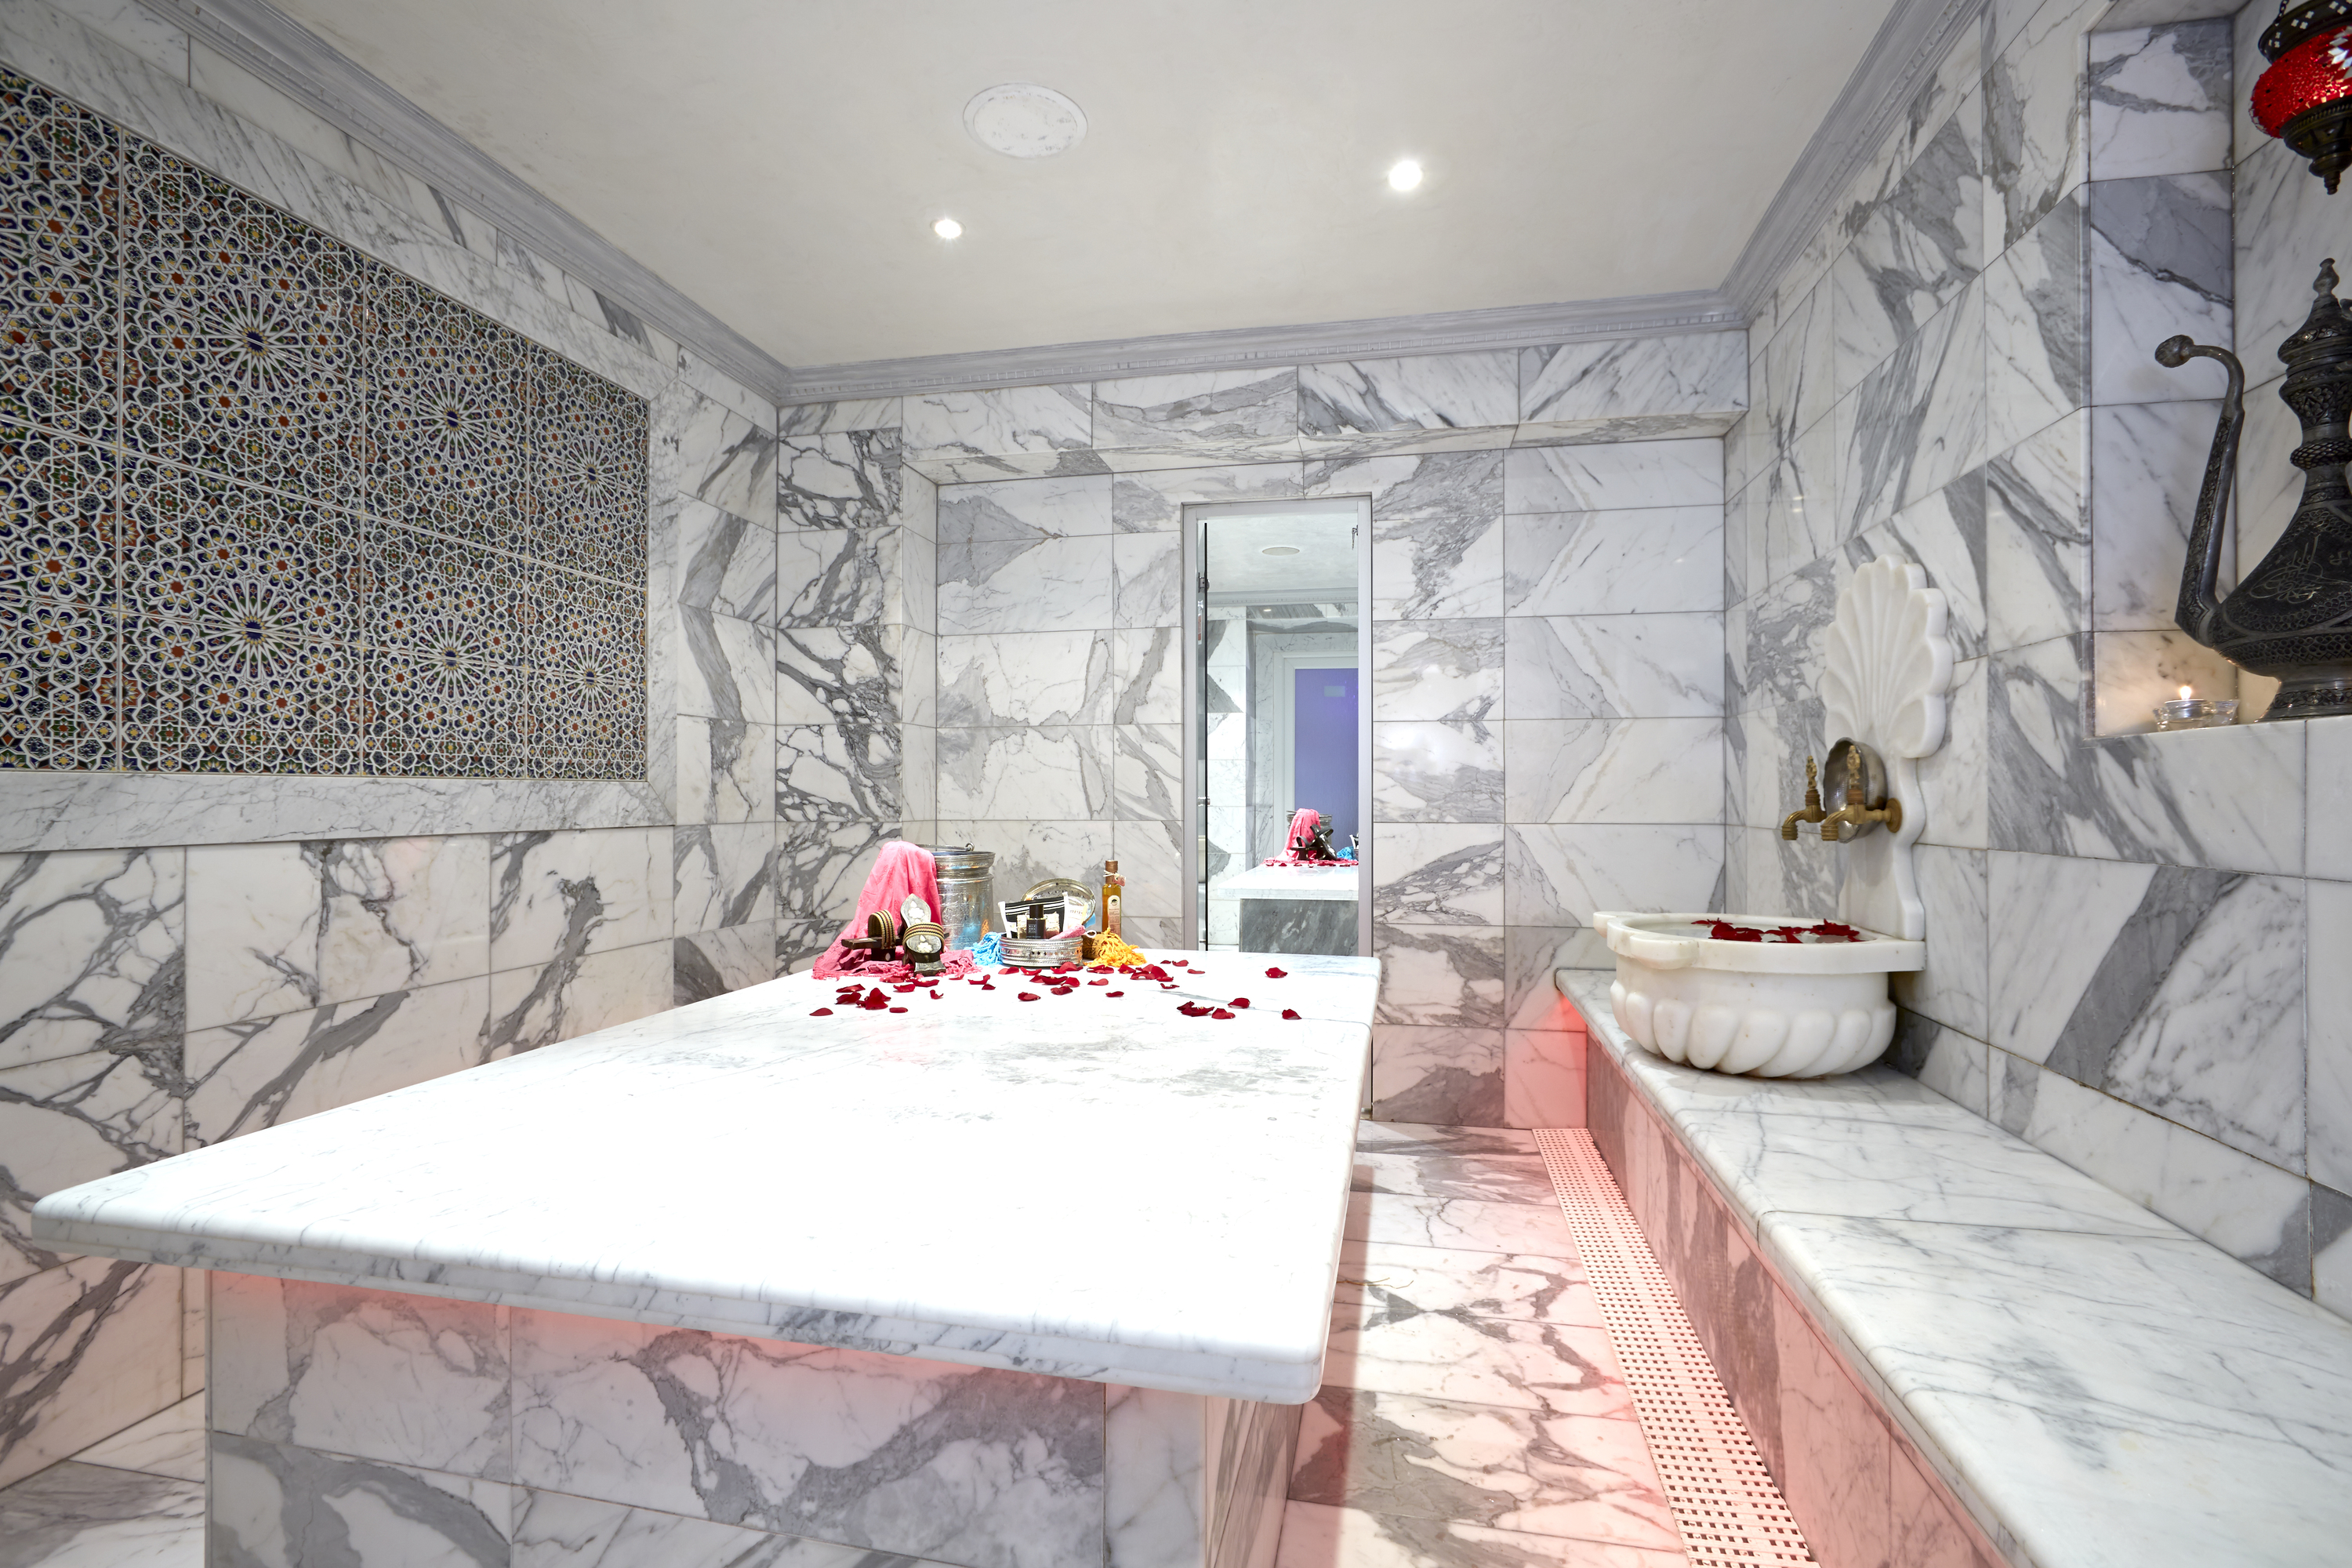 Turkish hammam at Marylebone's Crystal Palace Spa